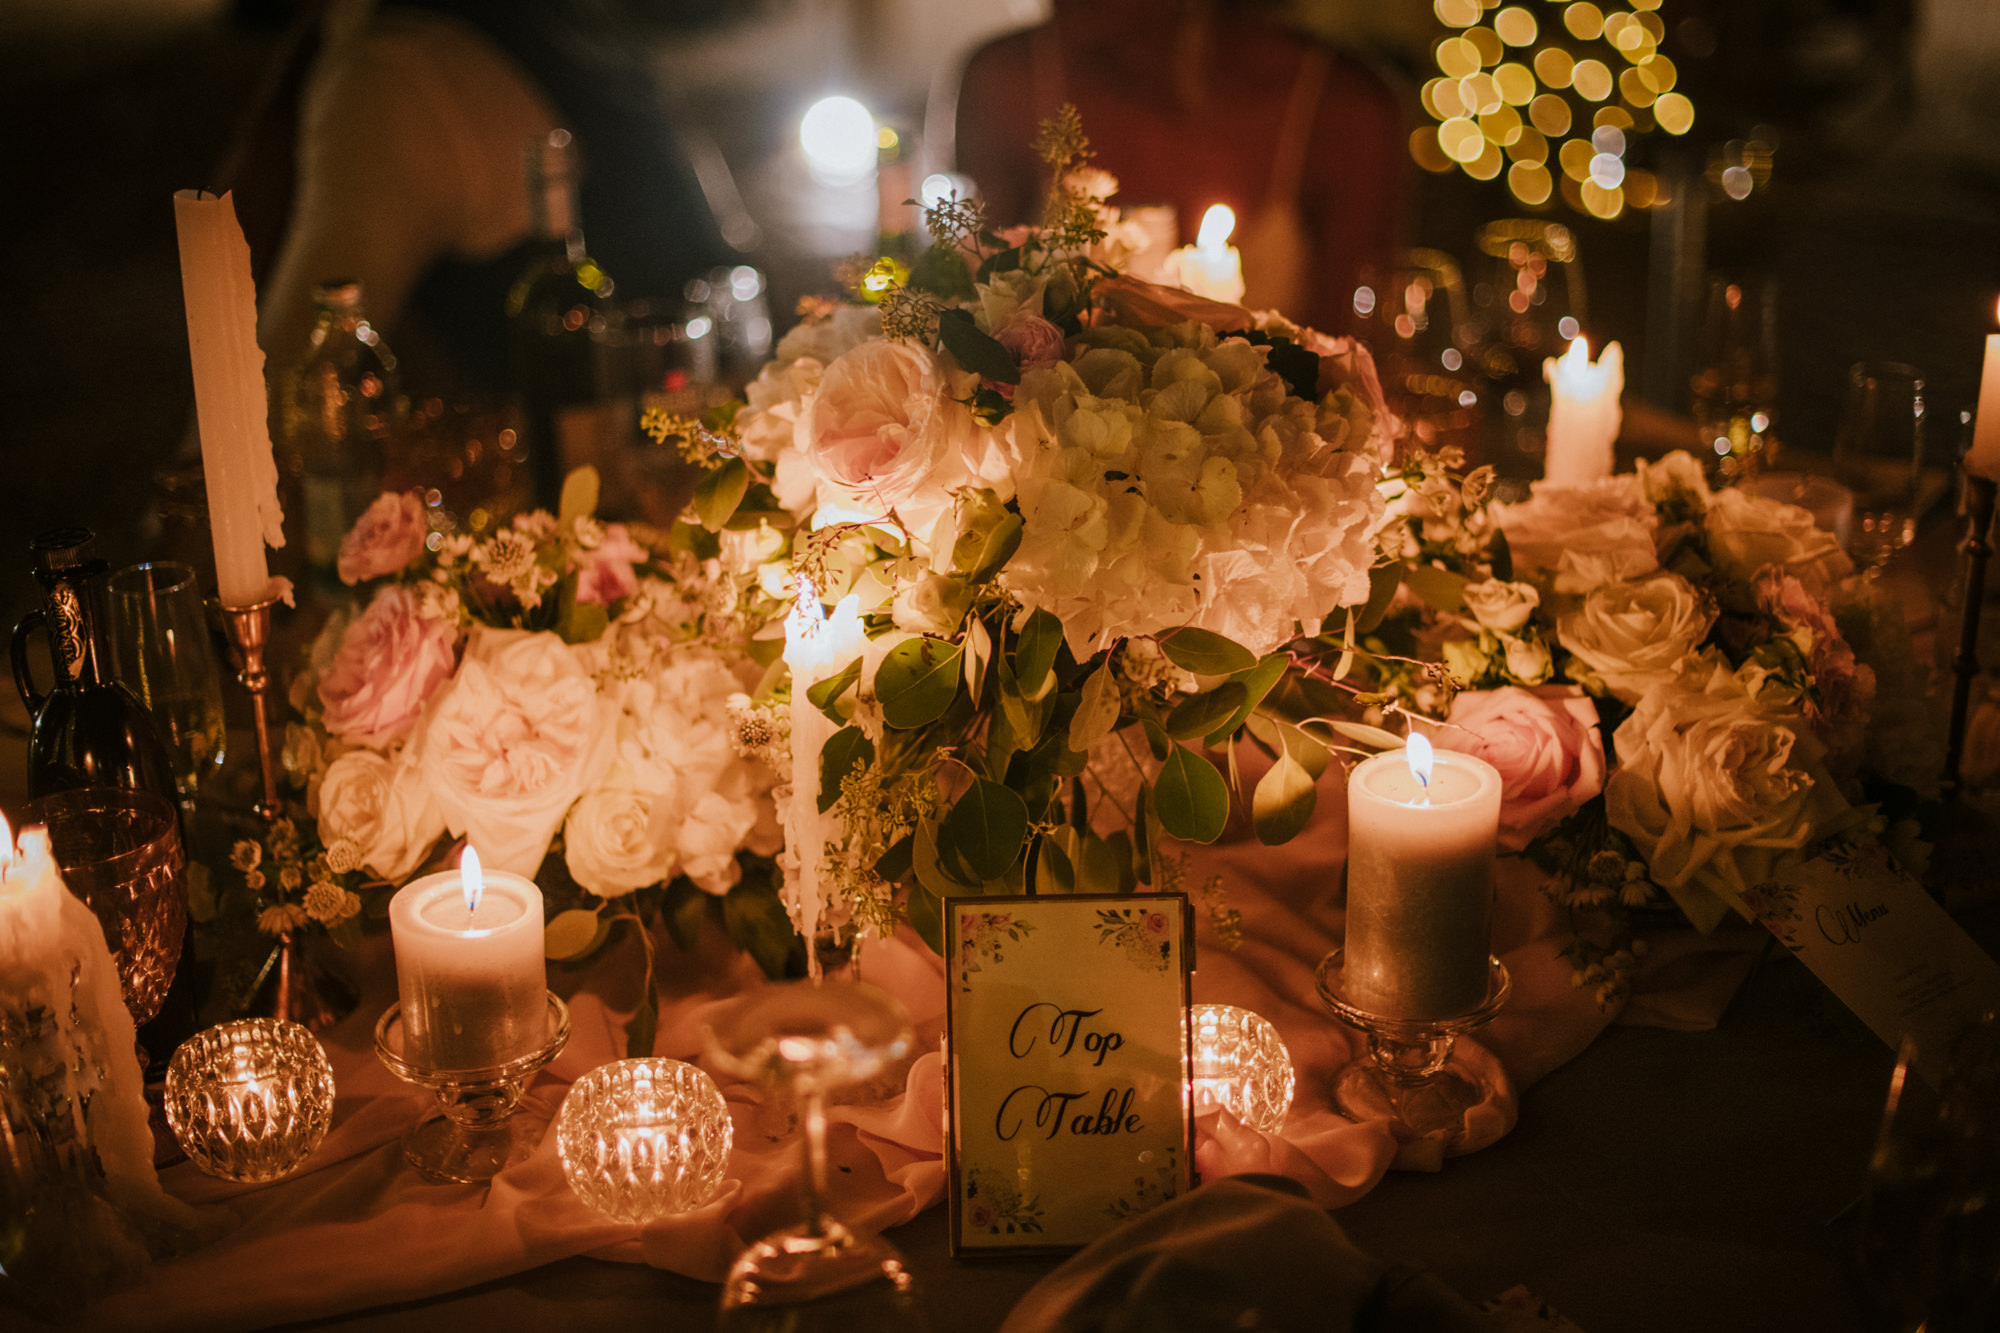 This is a top table for the wedding reception. There is a sign that says top table on it. The flowers are white and pink. There are small white candles and crystal cups.